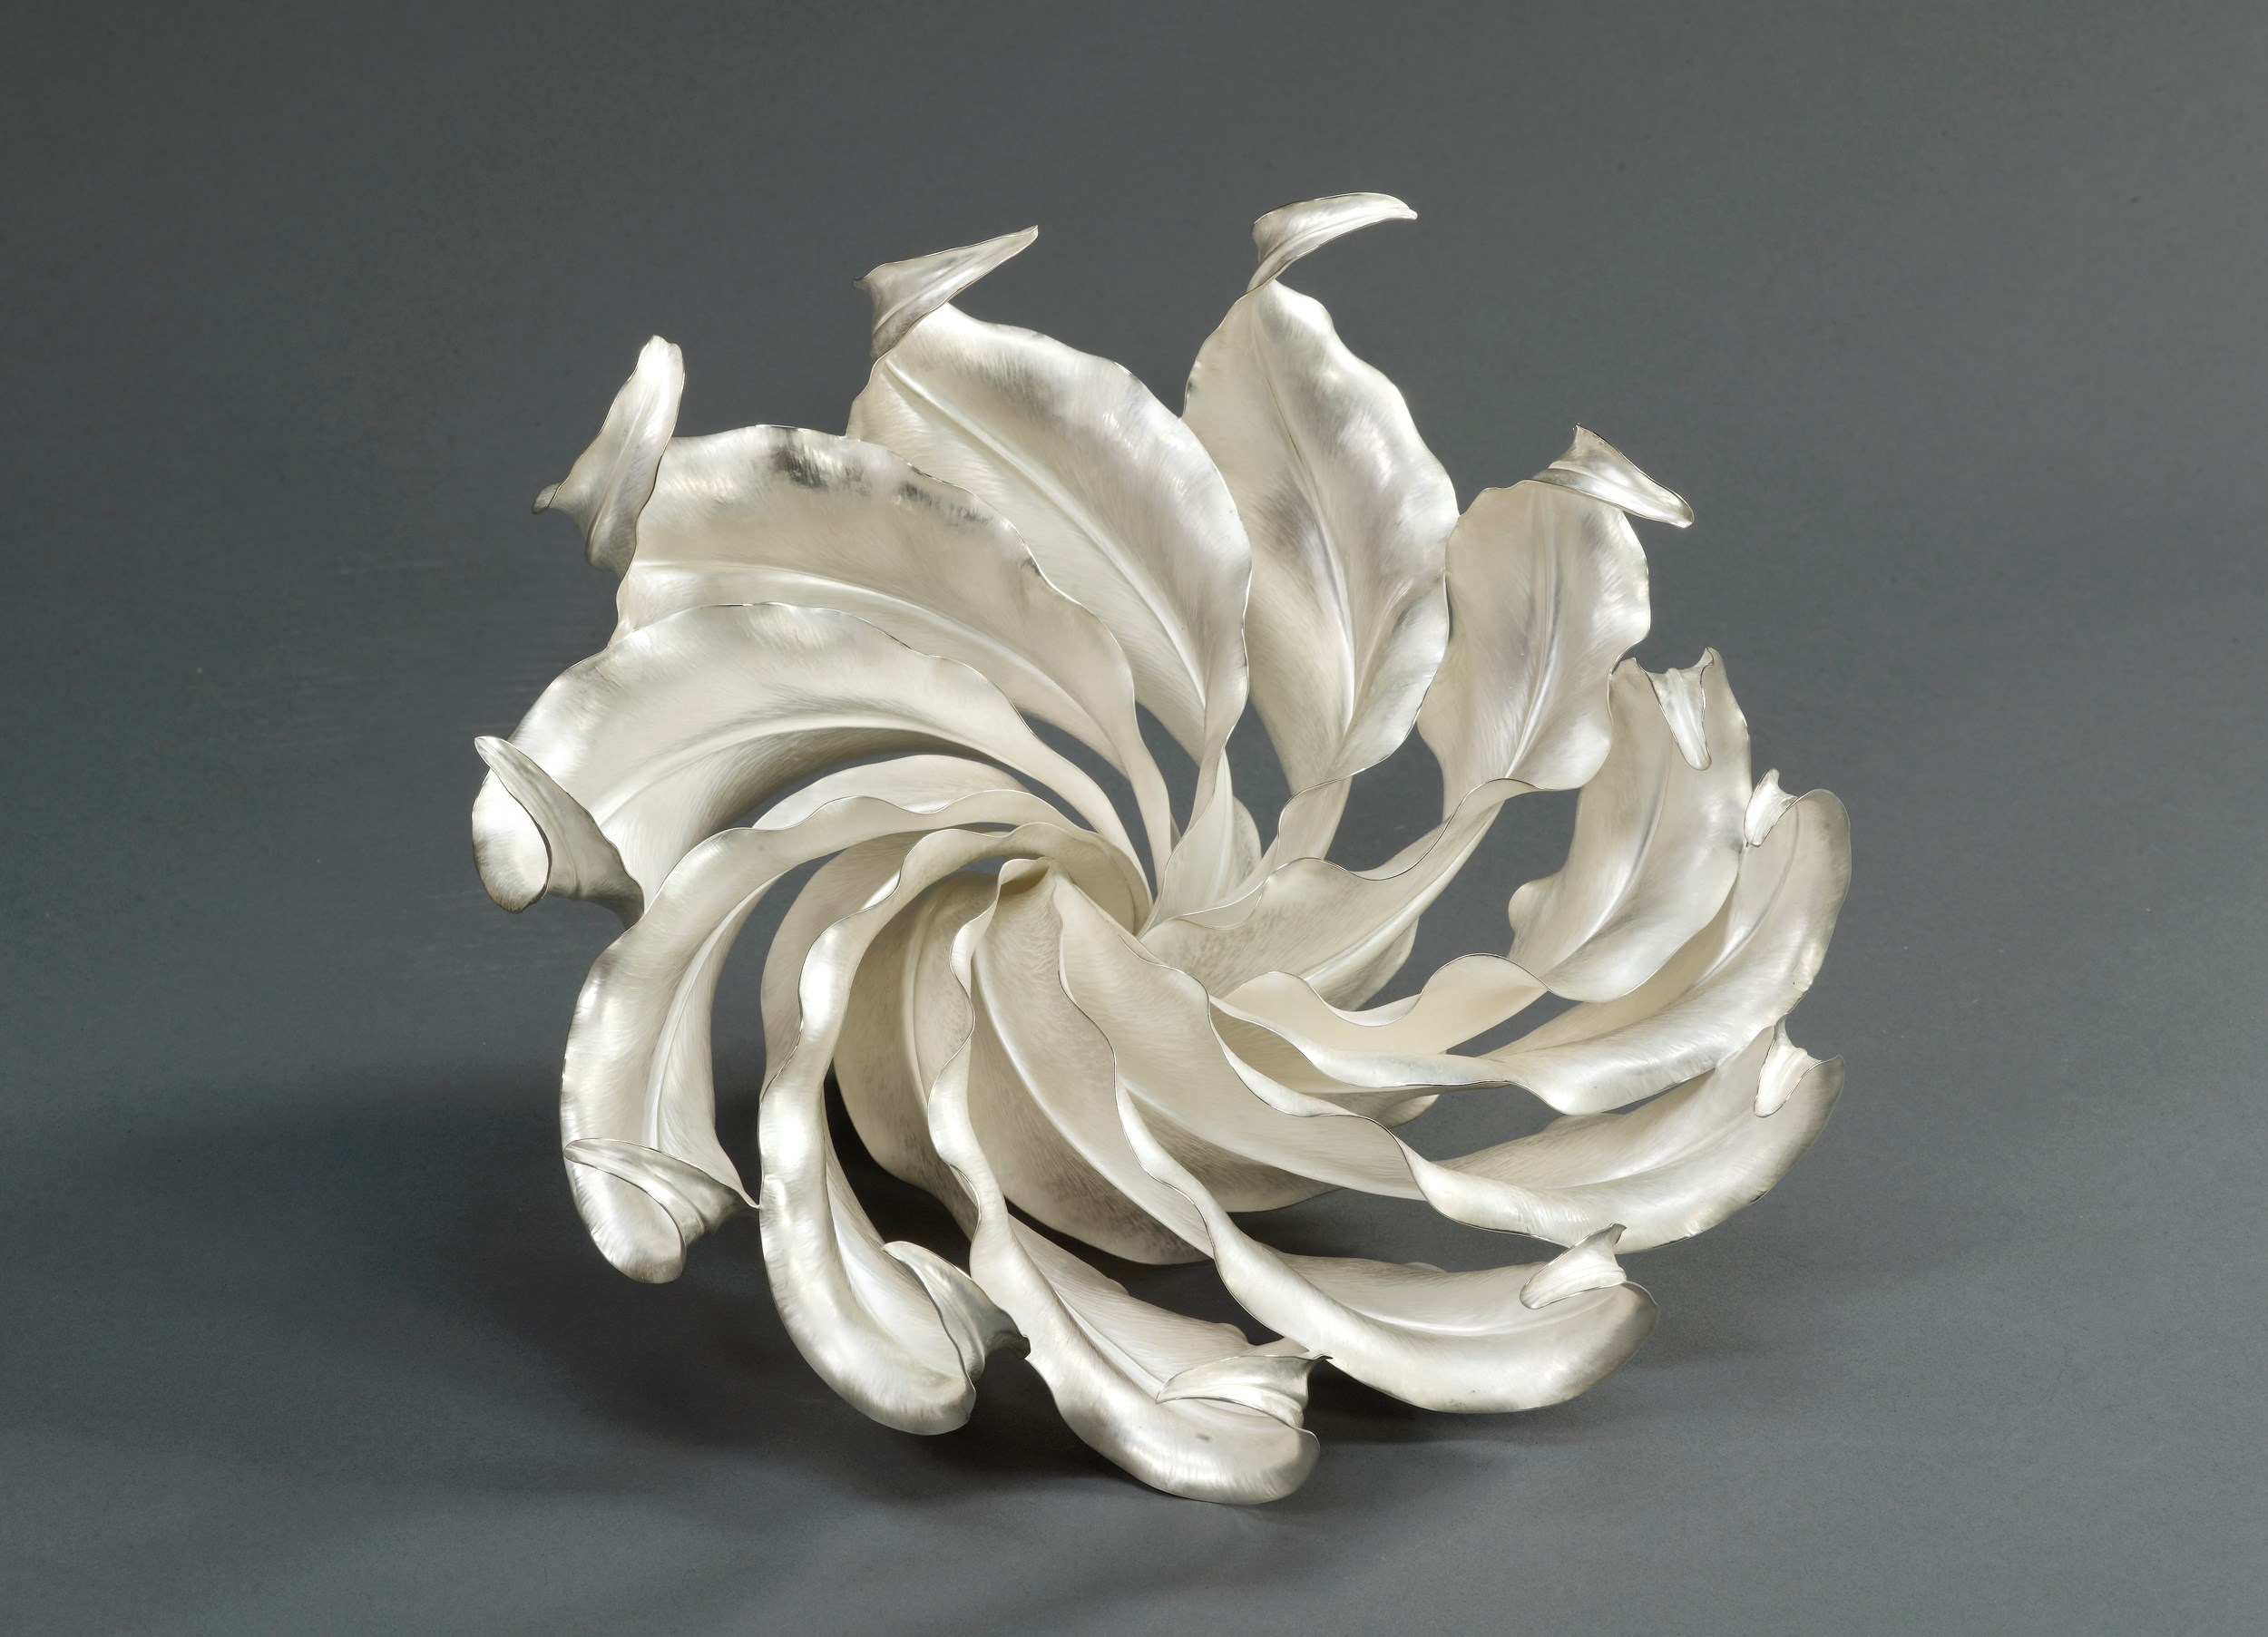 'Spiritus' centrepiece, 2010, Theresa Nguyen. Measurements: Height 19.5cm Width 26.5cm Diameter 24cm. Image © The Goldsmiths Company. Courtesy 'Collection: The Worshipful Company of Goldsmiths'. '